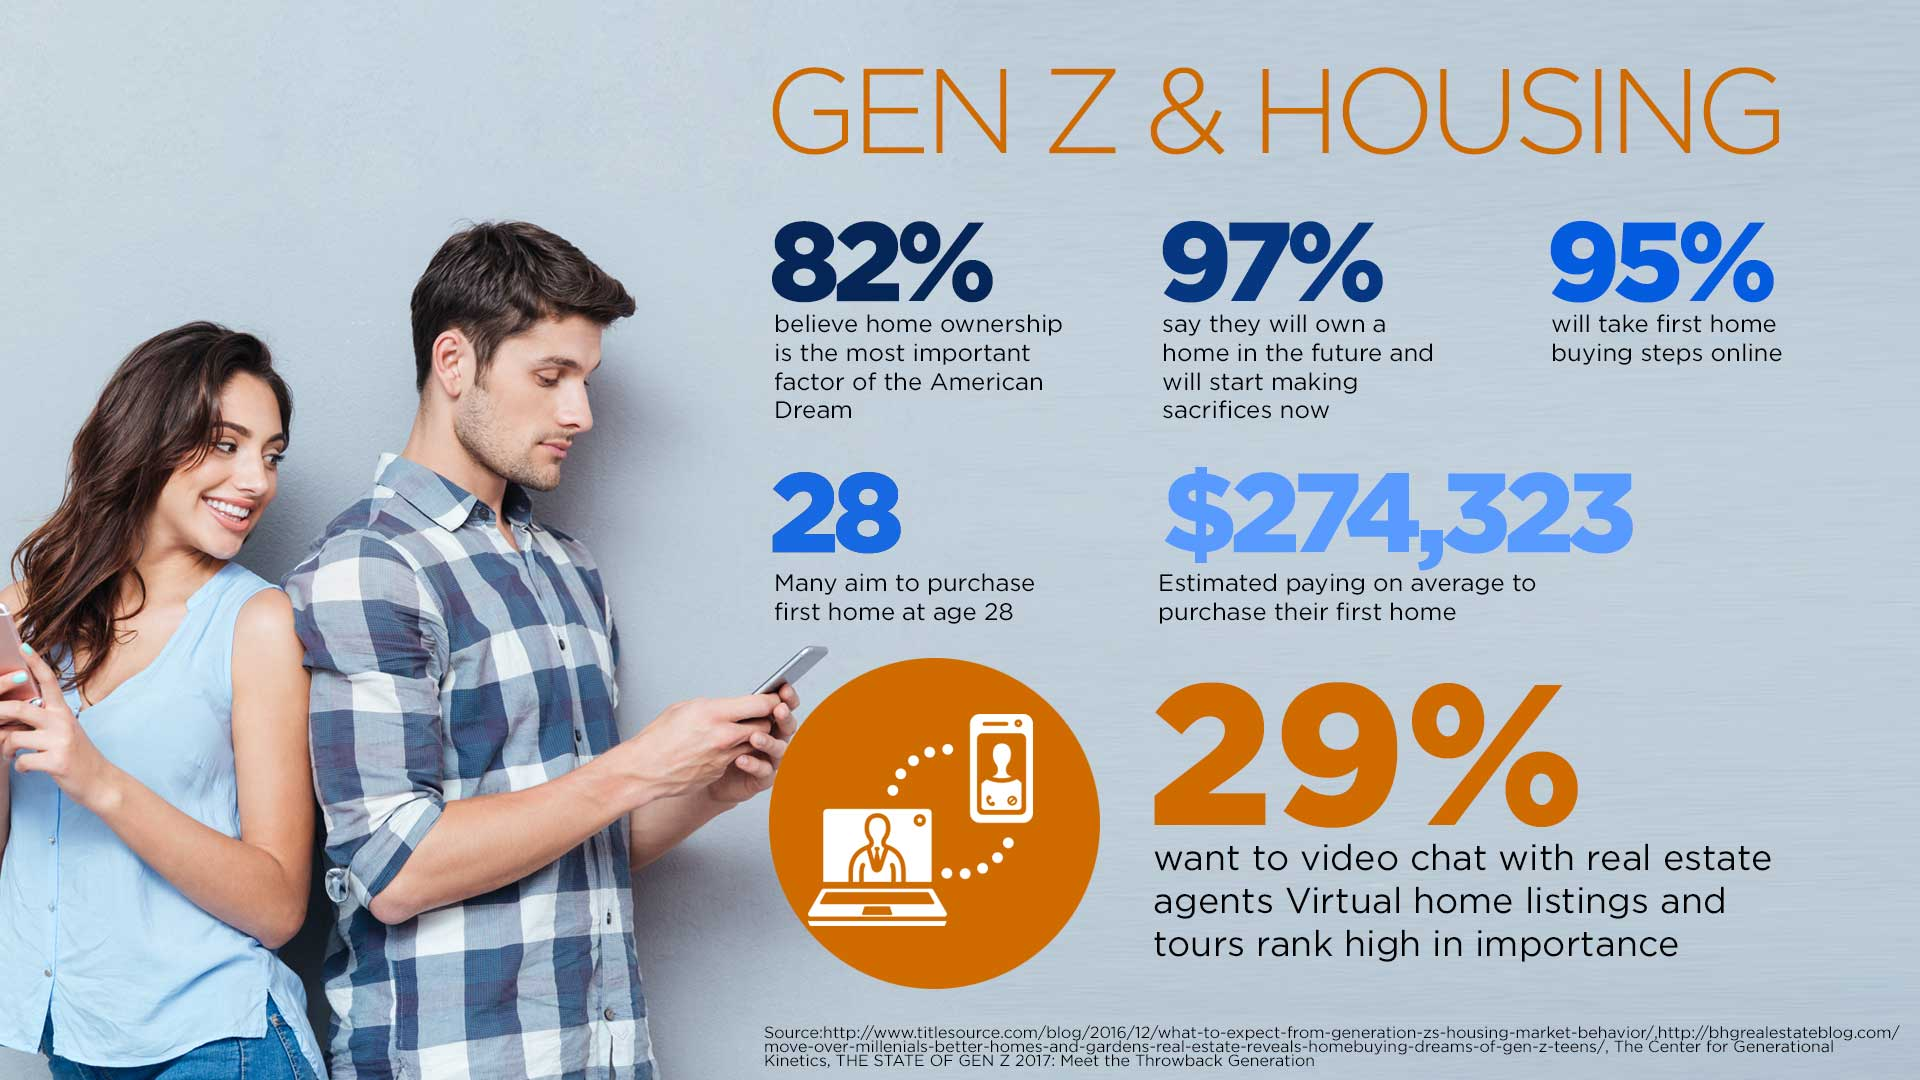 24% of Gen Z says they will pay for college through personal savings 38% plan to work during college 65.7% of Gen Z students plan to attend in-state colleges to save on tuition costs Willing to make sacrifices to attend college debt-free: Driving or owning a vehicle (23.2%) Freedom of living independently (22.9%) Dining out (22.3%) Spending time with friends (21.9%) Getting married (9.7%) 82% plan to obtain scholarships to pay for college. Find this image on blog.phmc.com